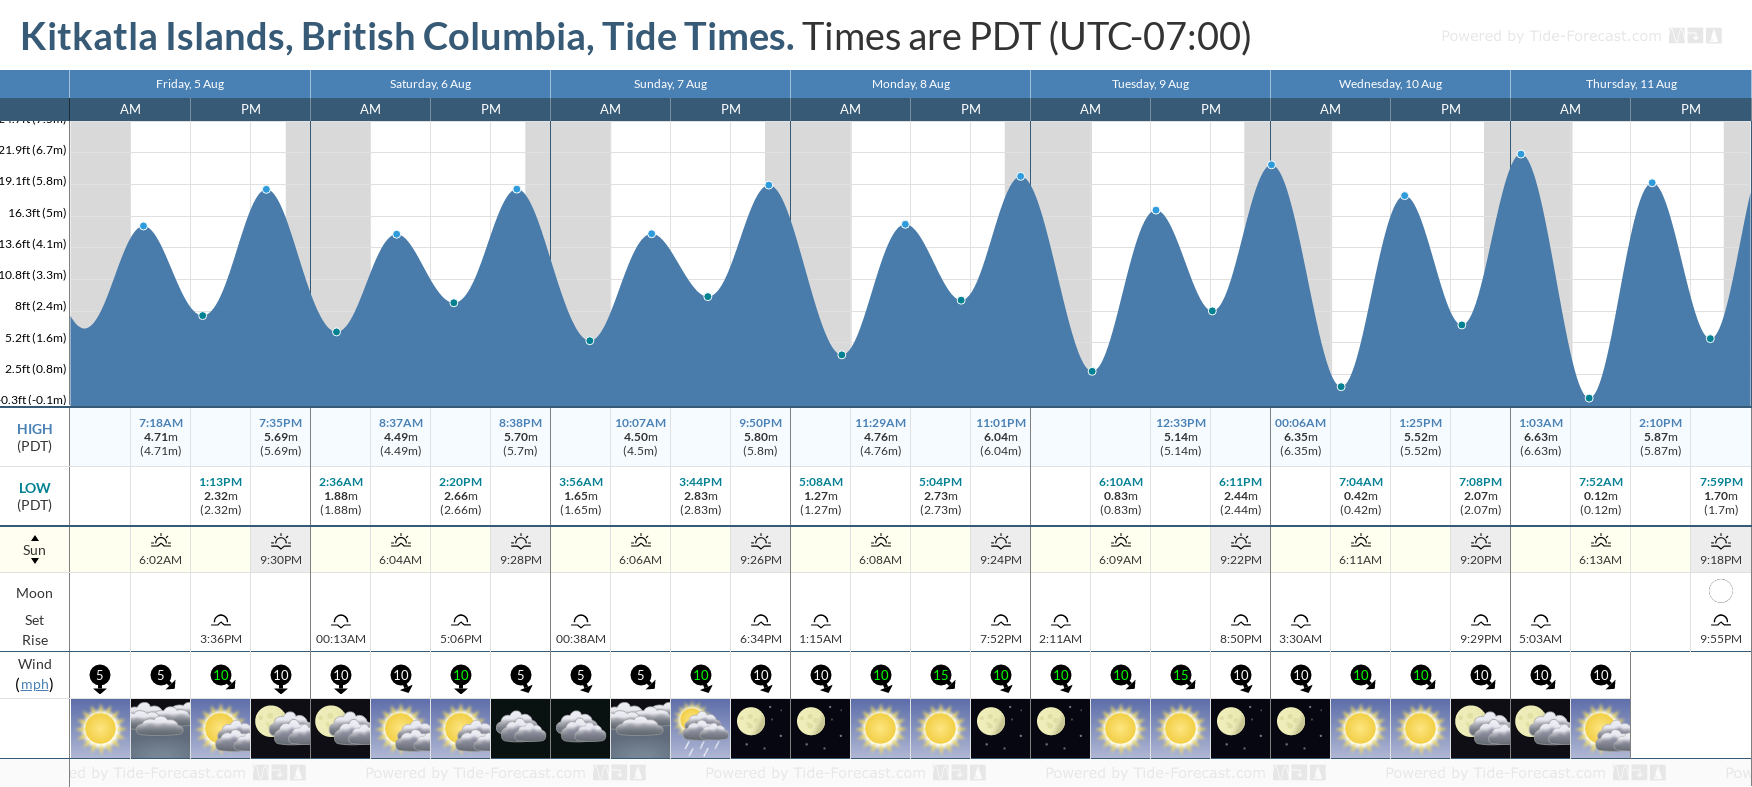 Kitkatla Islands, British Columbia Tide Chart including high and low tide tide times for the next 7 days